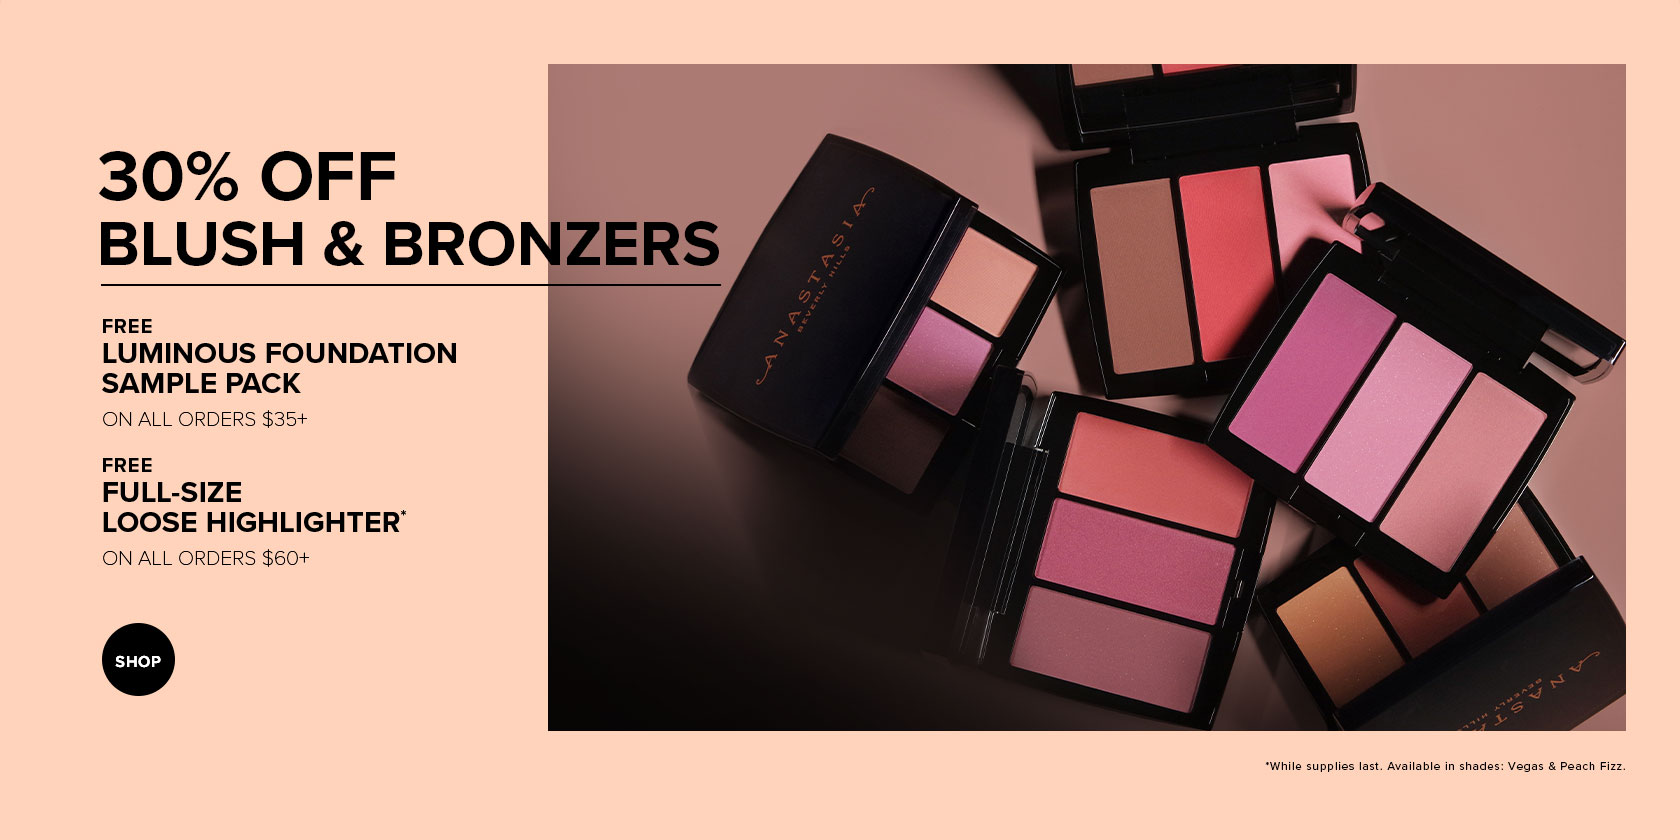 30% off Blush and Bronzers